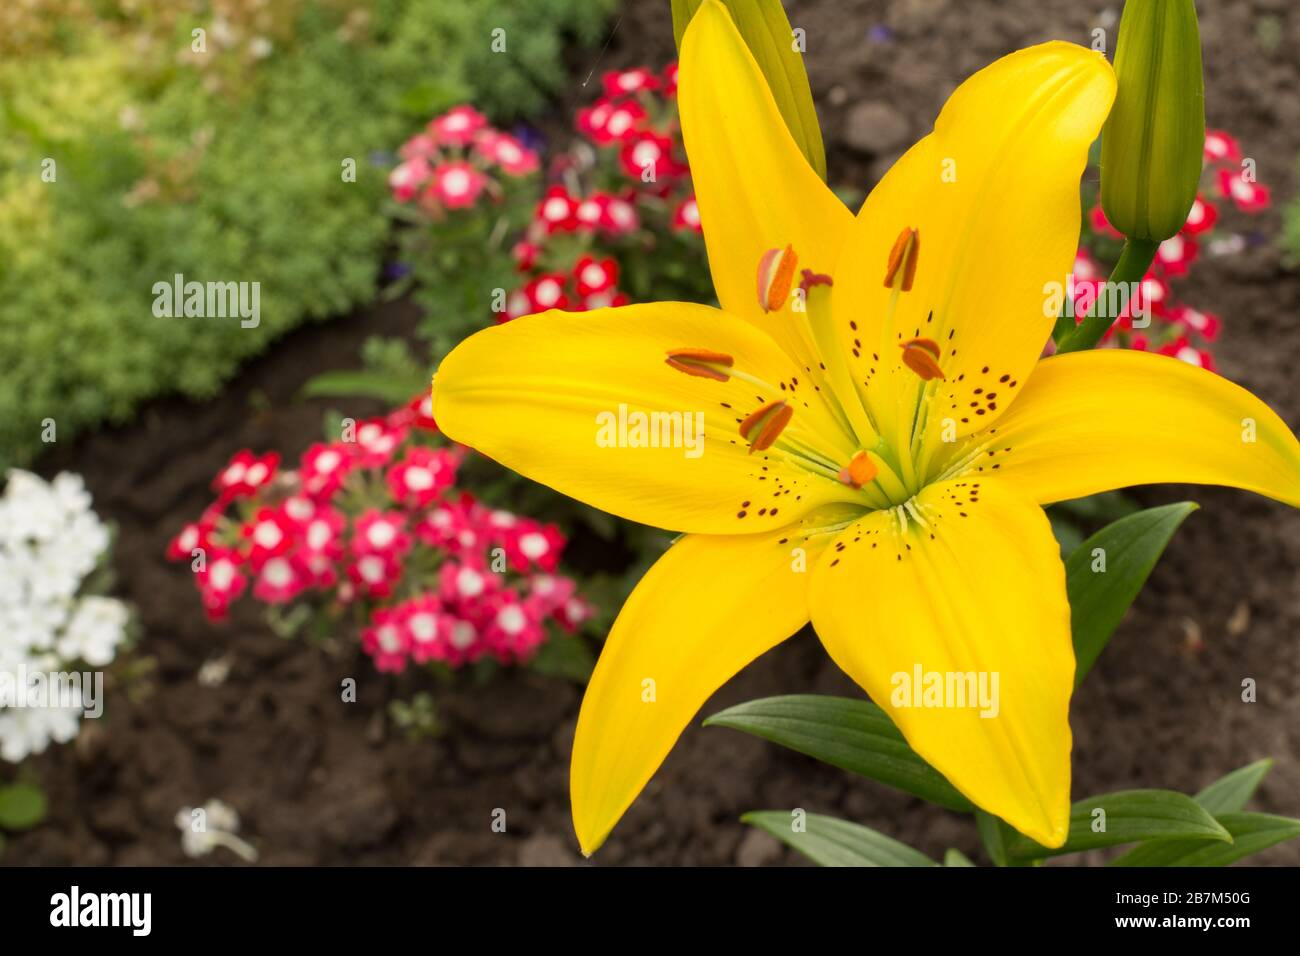 Yellow Lily Flower In The Summer Garden With Blurred Plants And